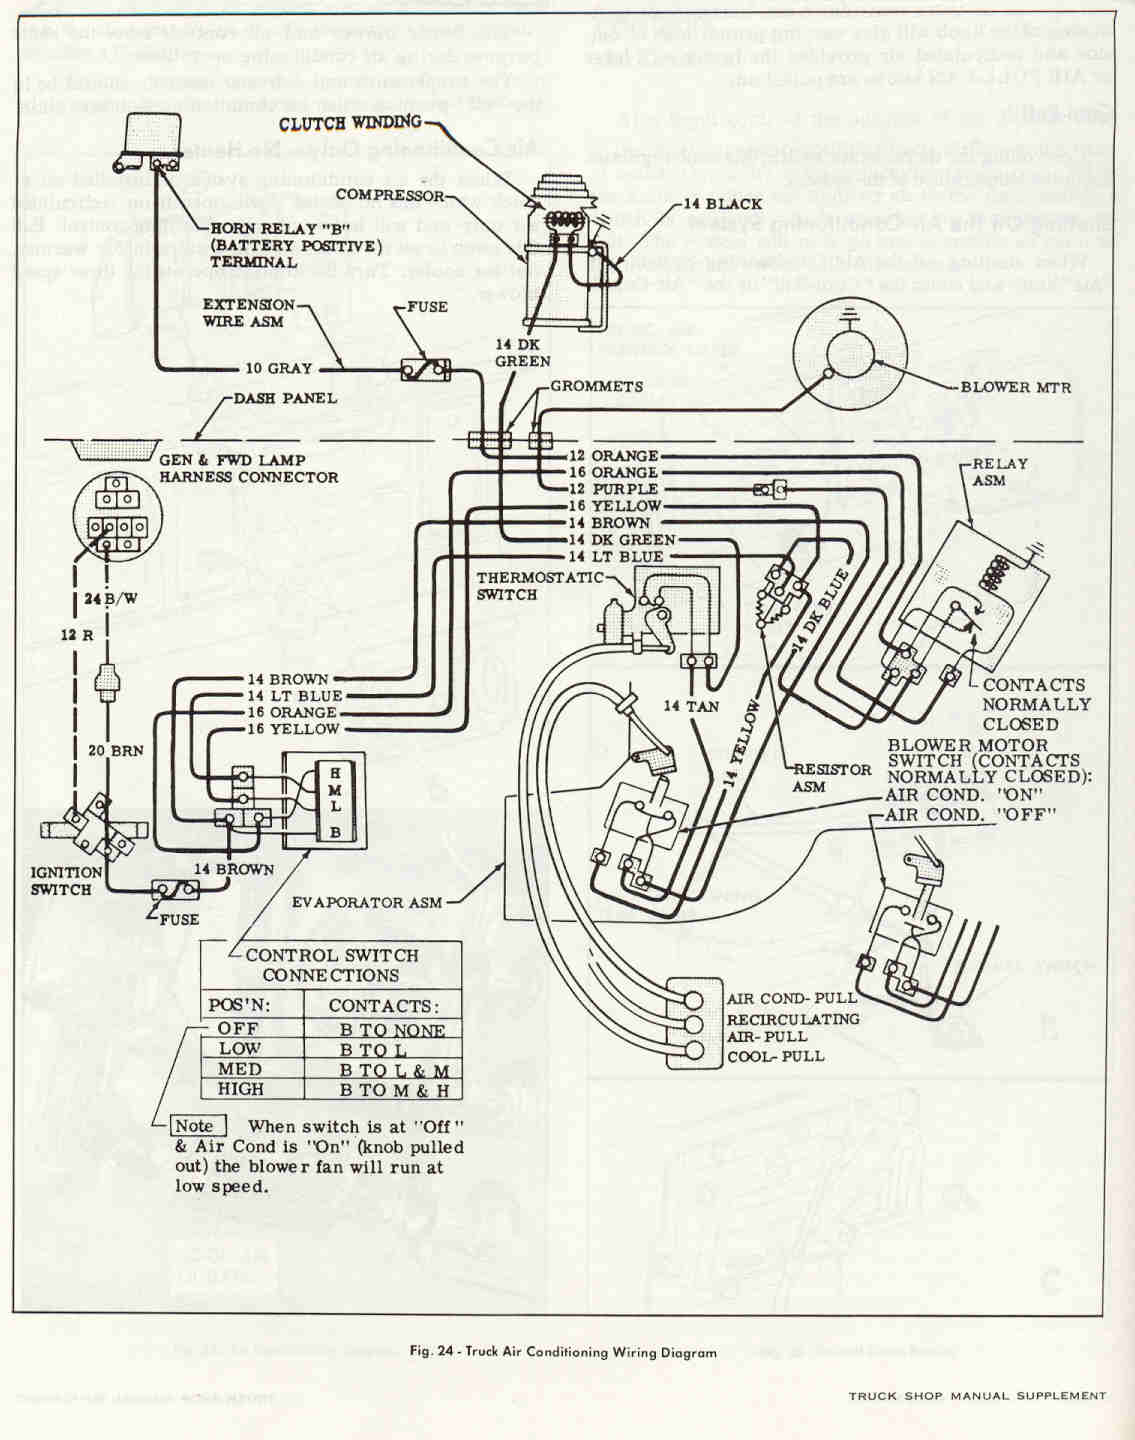 72 Chevy Truck Wiring Diagram from www.persh.org